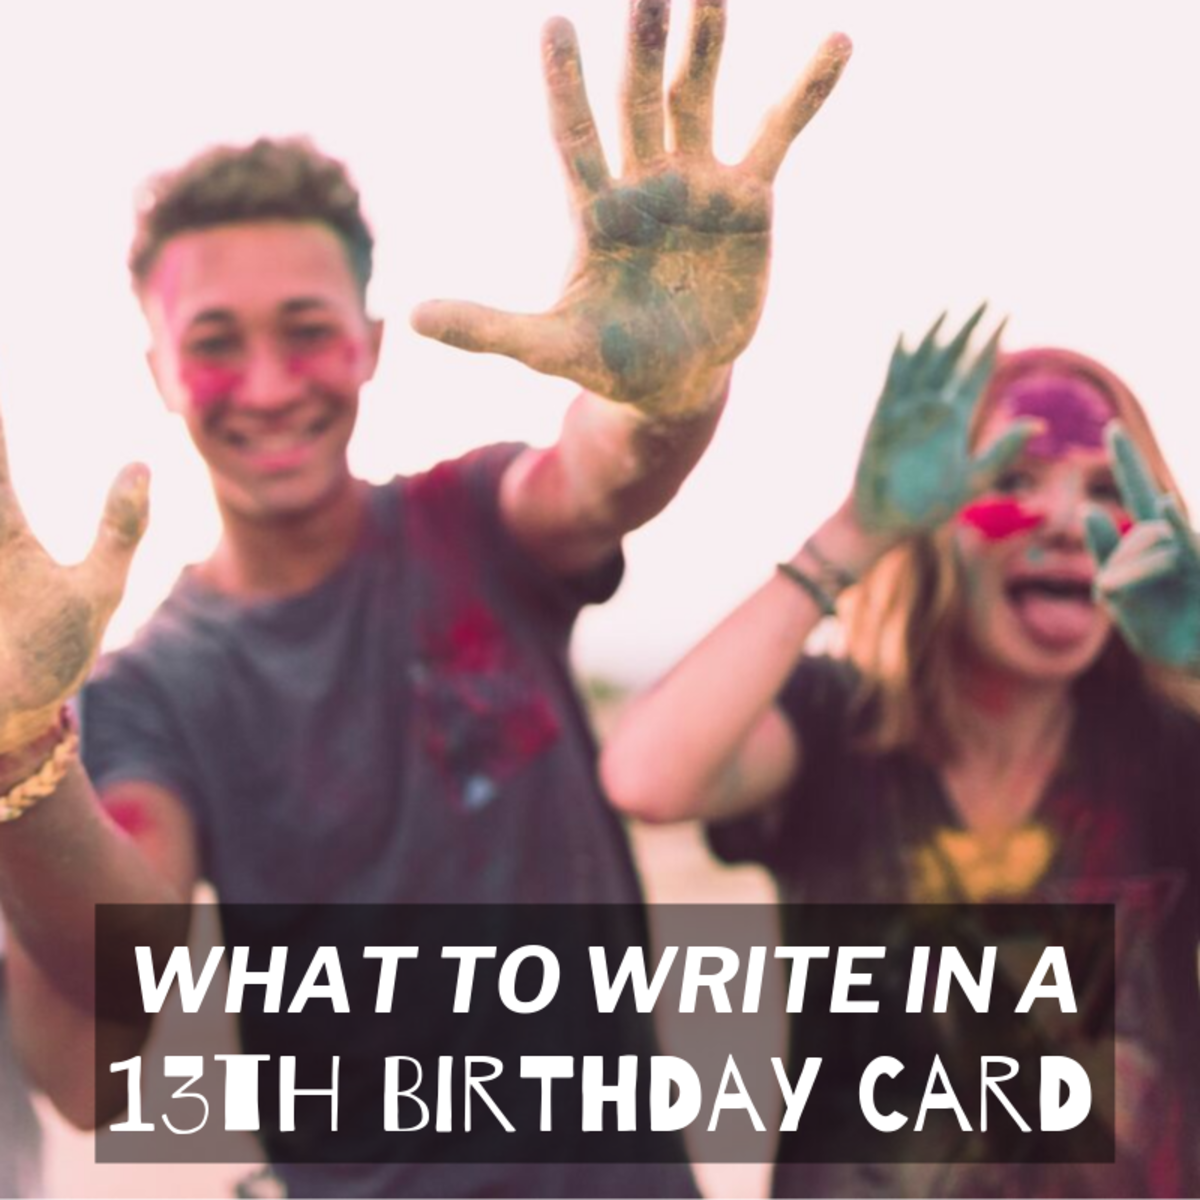 13 is the first year of teenagerhood! Write a memorable card for the new 13-year-old in your life.